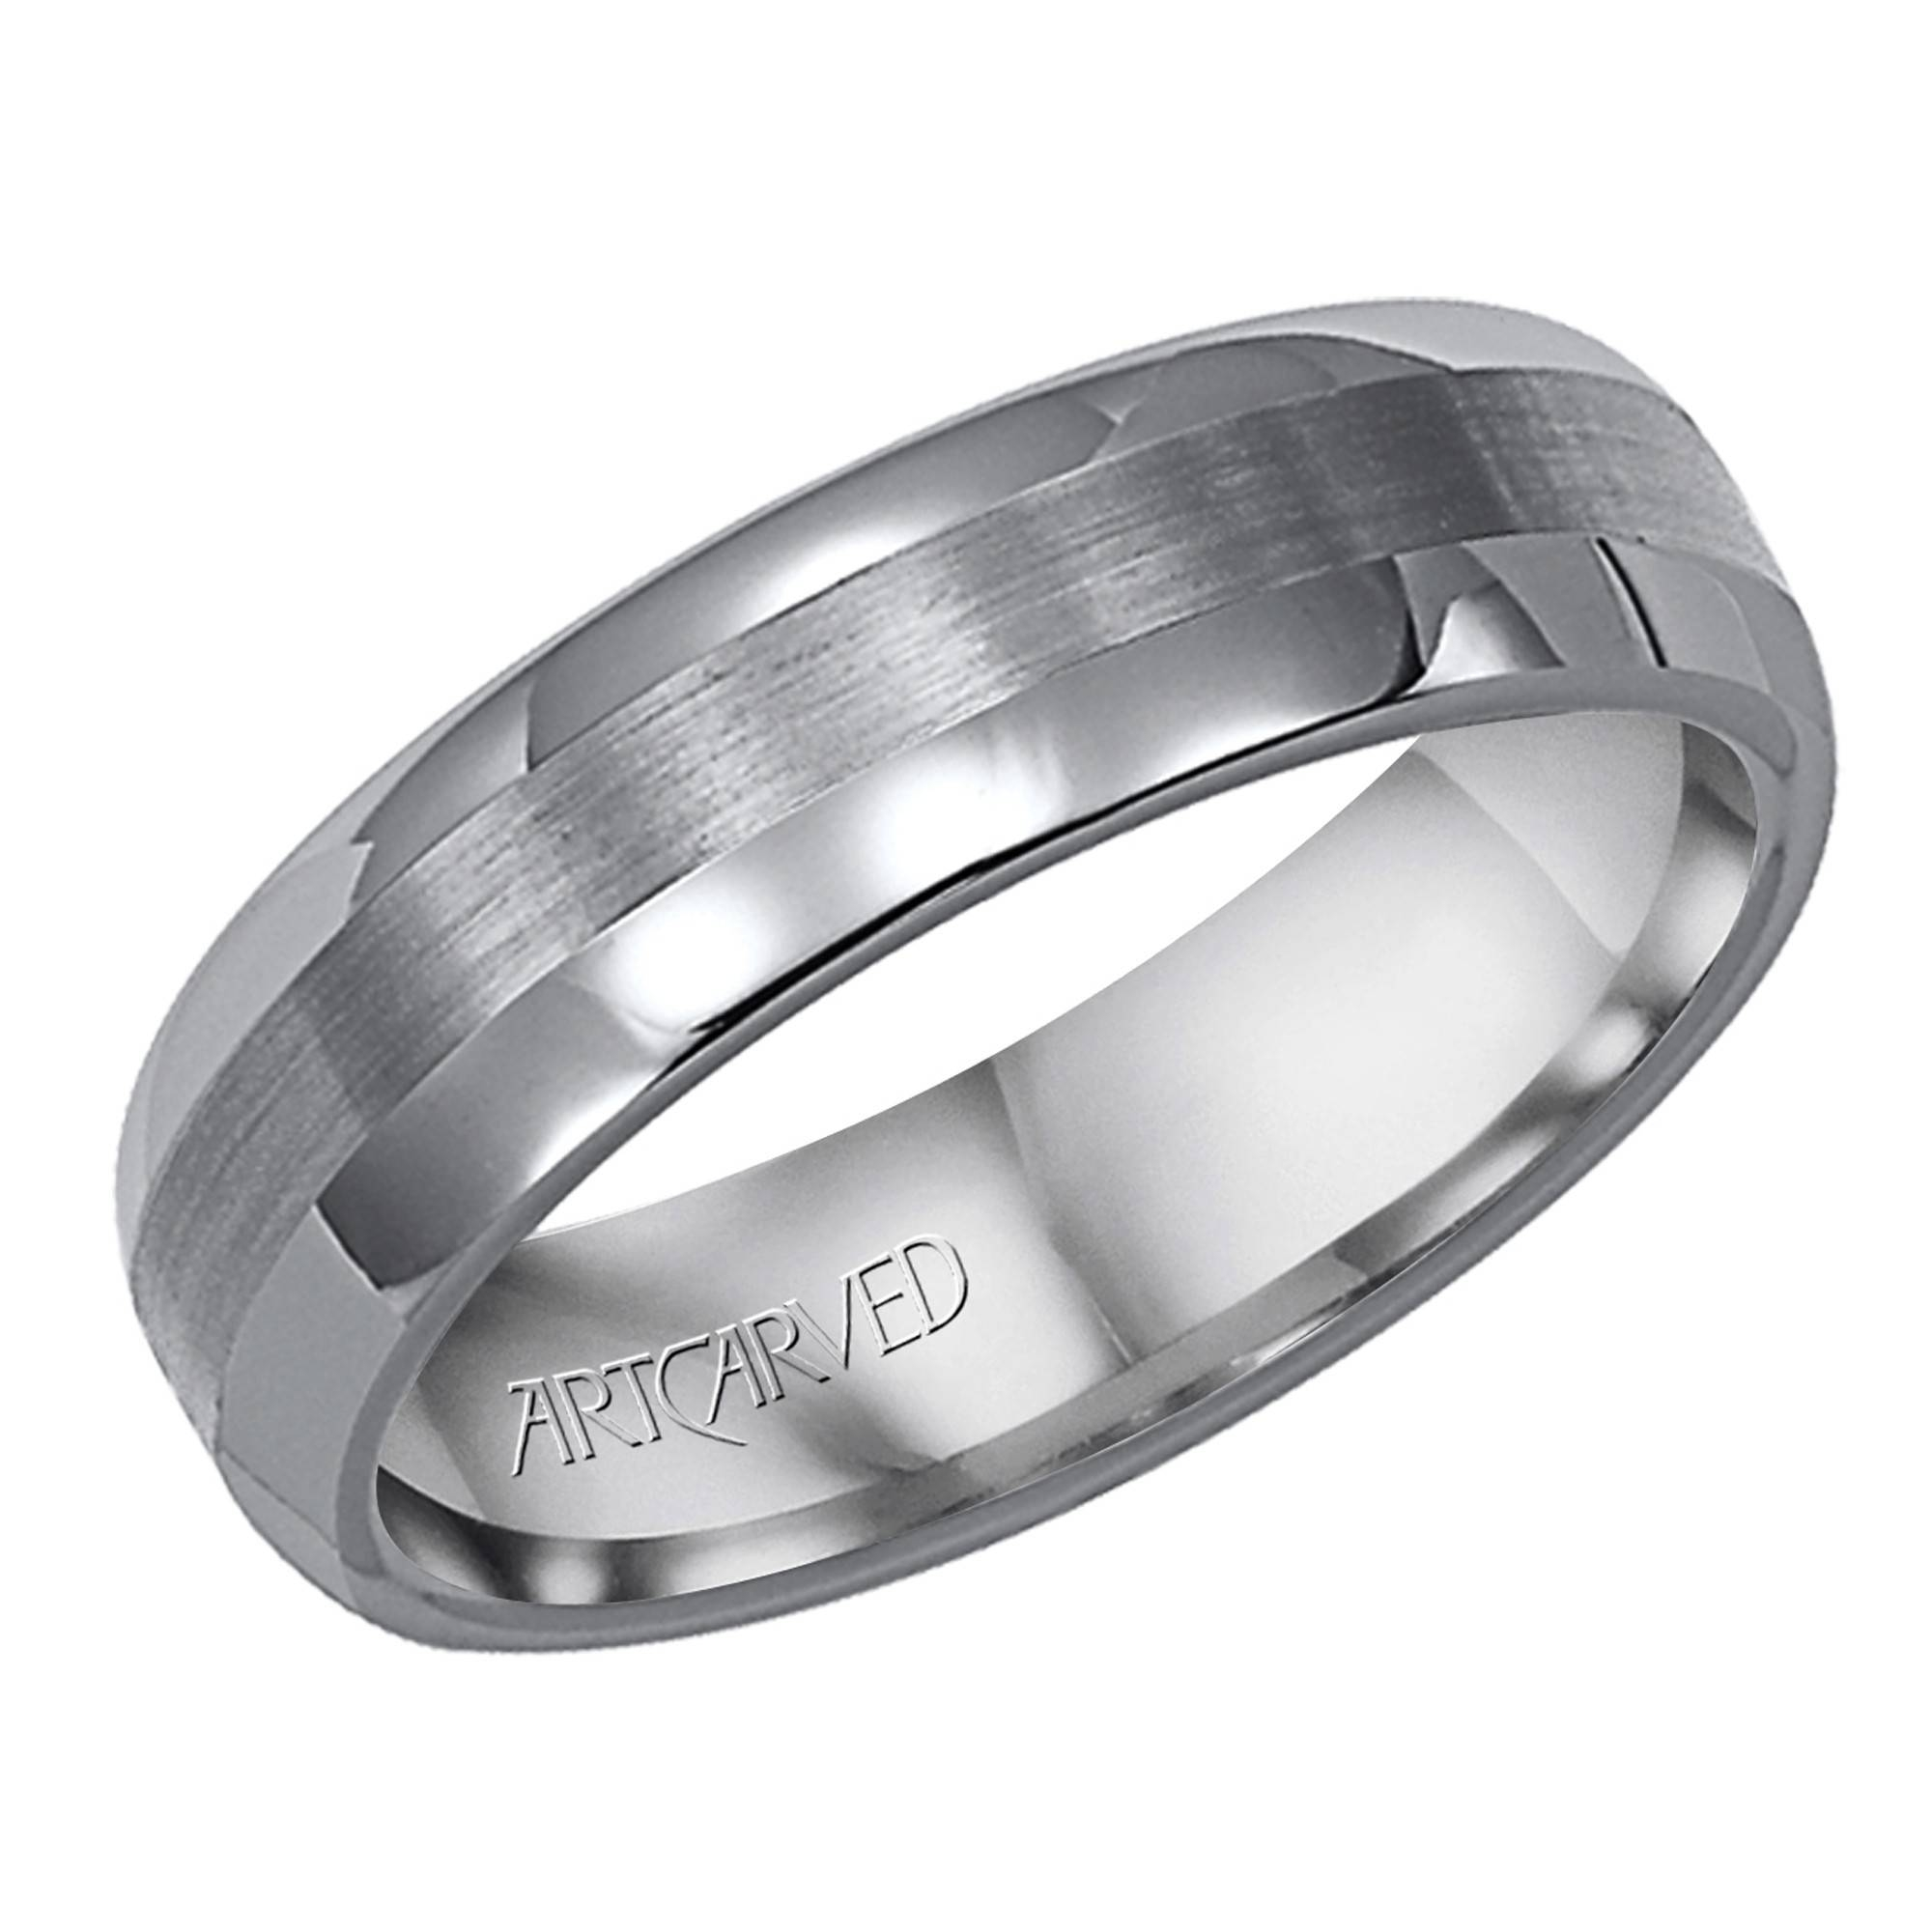 Artcarved Aurora Mens Satin Wedding Ring In Tungsten (6Mm) Regarding Art Carved Wedding Bands (View 2 of 15)